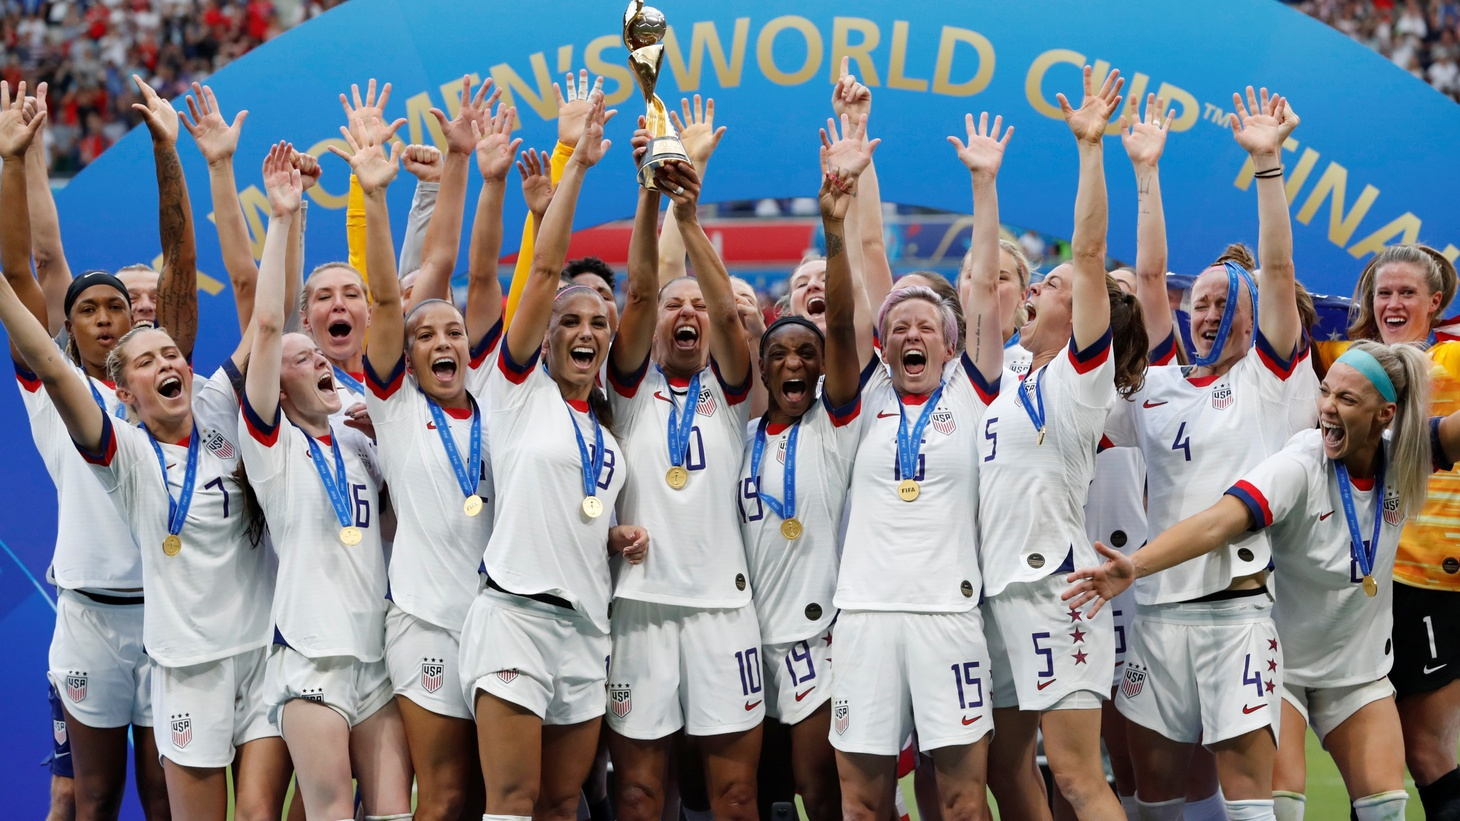 Carli Lloyd of the U.S. and teammates celebrate winning the Women's World Cup 2019 with the trophy. Groupama Stadium, Lyon, France. July 7, 2019.